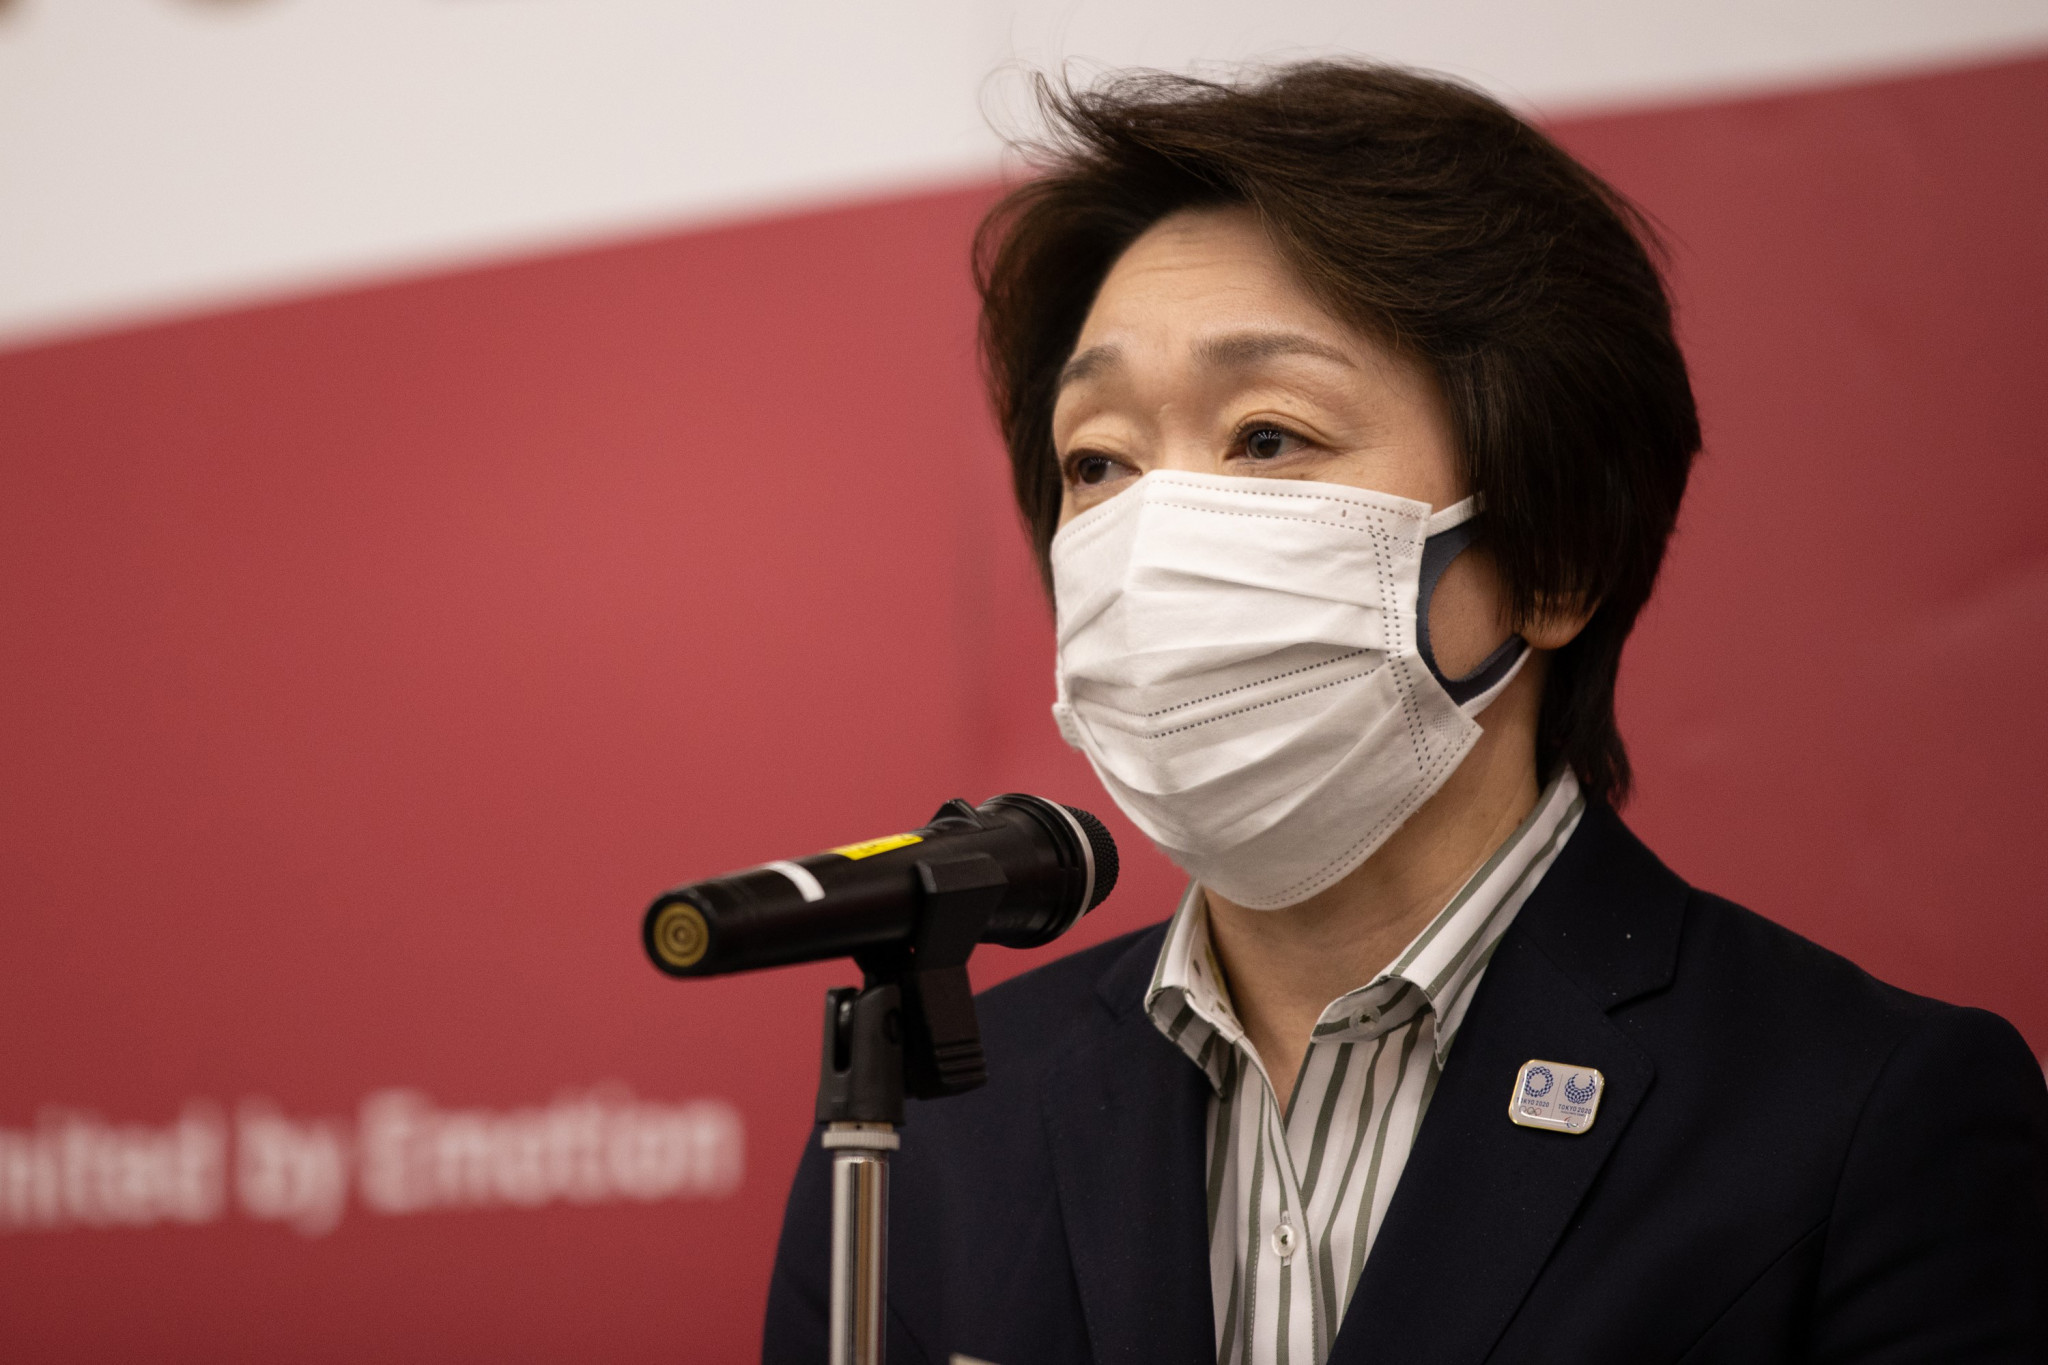 New Tokyo 2020 President Seiko Hashimoto addressed the International Olympic Committee Executive Board for the first time today ©Getty Images